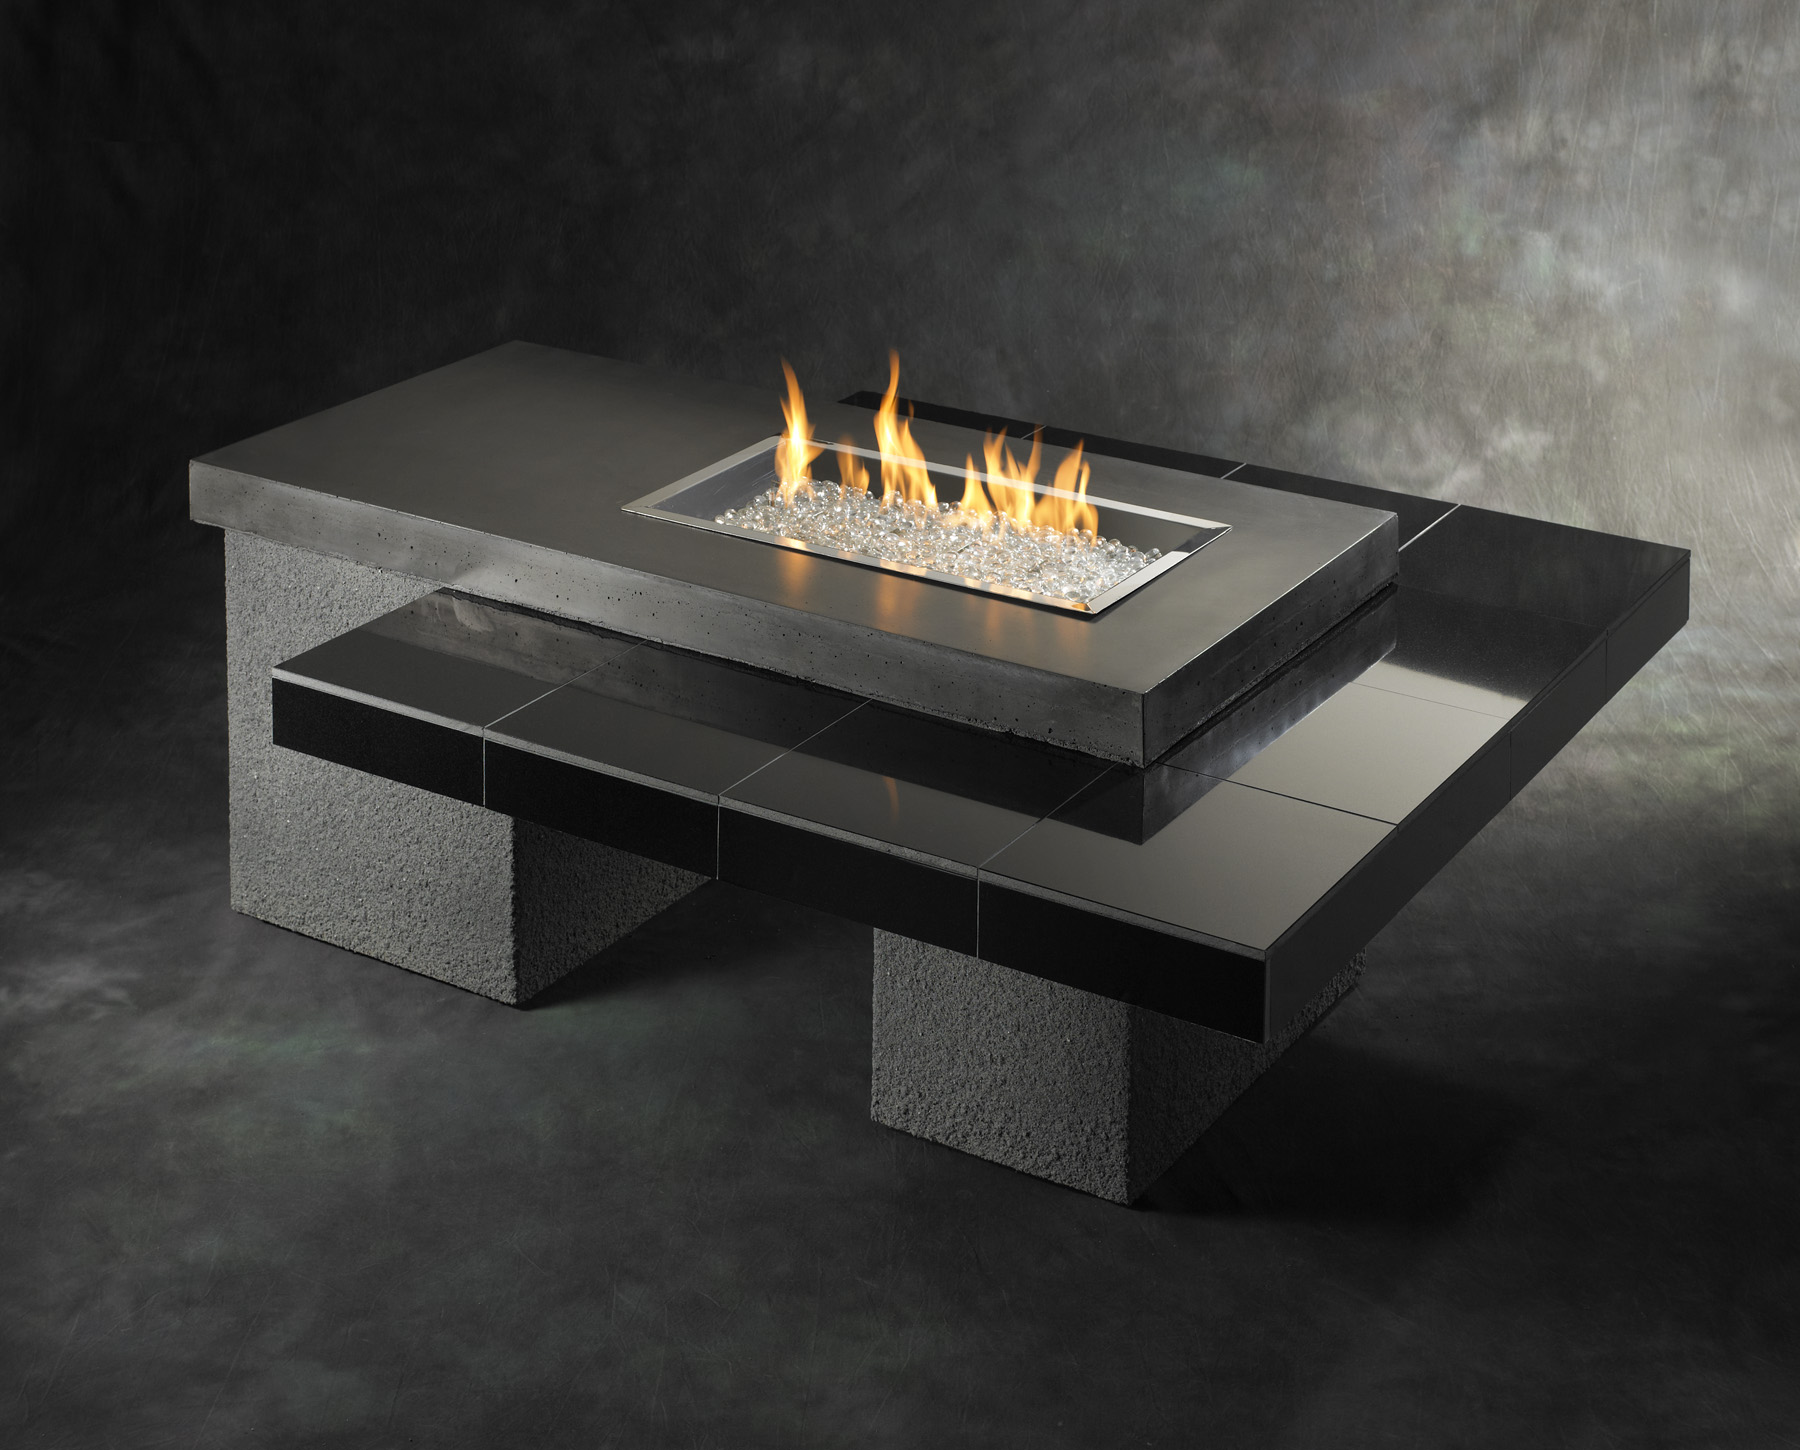 Black modern mnimalist fire pit table idea with black ceramic surface  Top Result 50 Awesome Natural Gas Fire Table